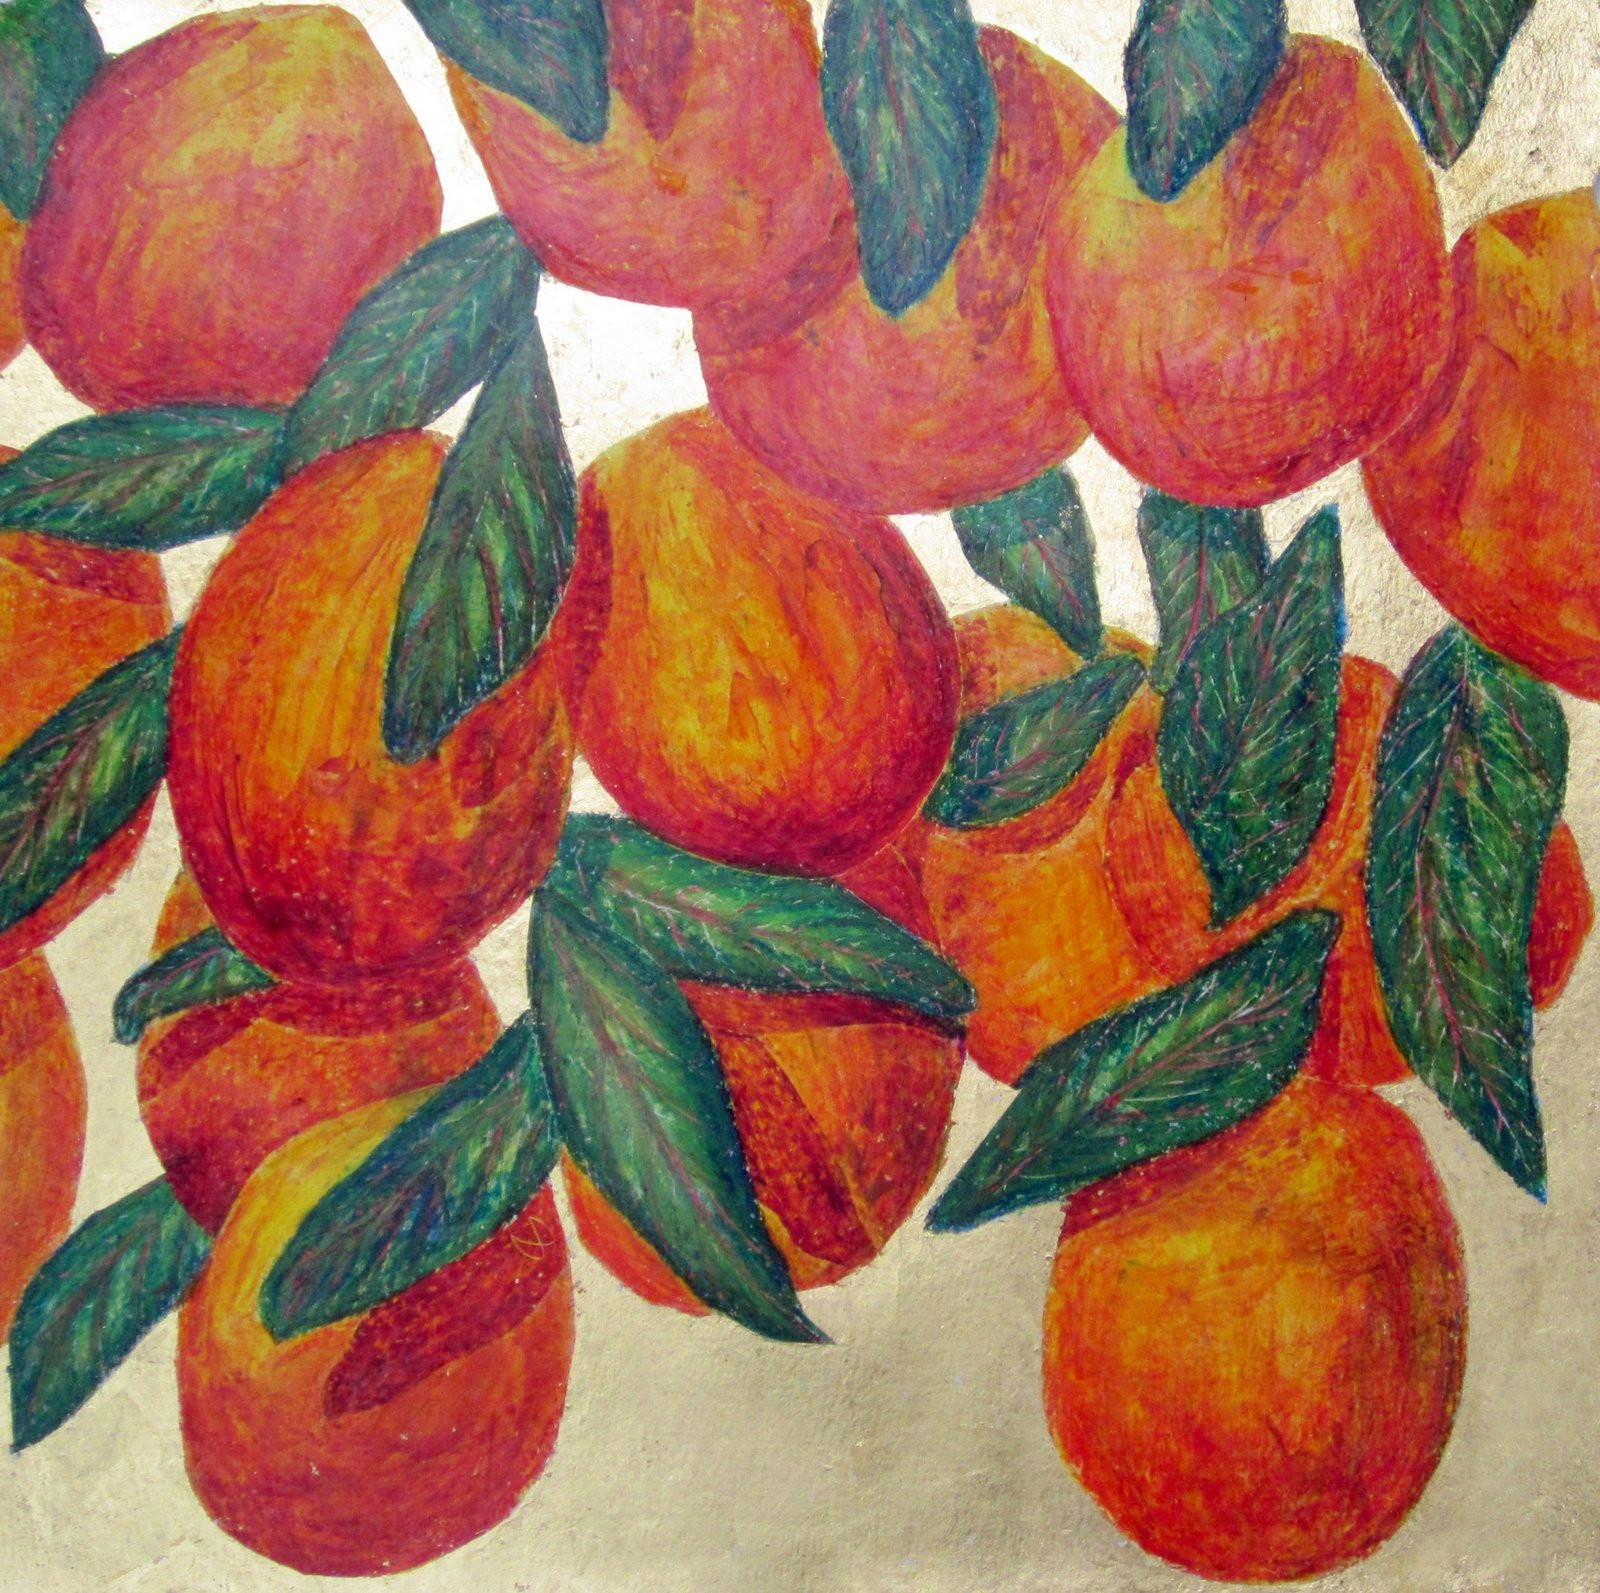 Vibrant painting of a Mango tree with juicy ripe fruit on gold leaf